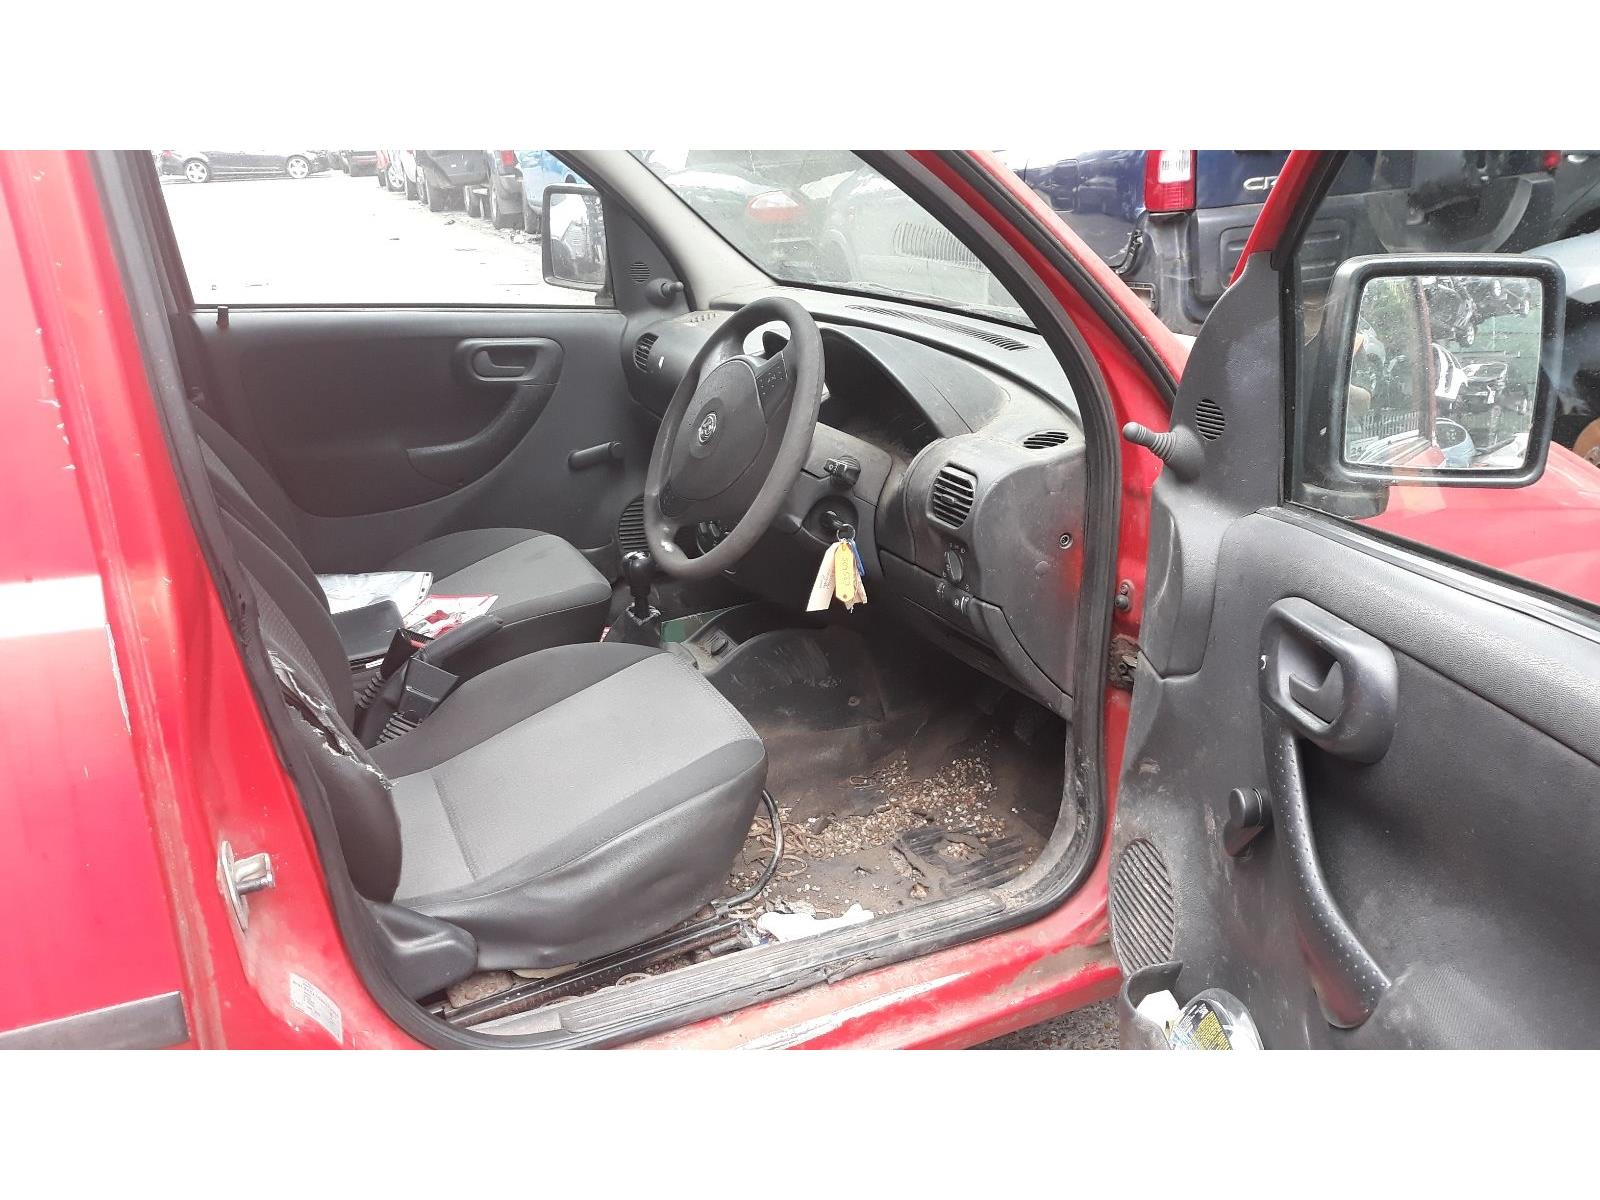 Vauxhall Combo 2001 To 2011 Cdti Lcv Scrap Salvage Car For Spares Sale Auction Silverlake Autoparts